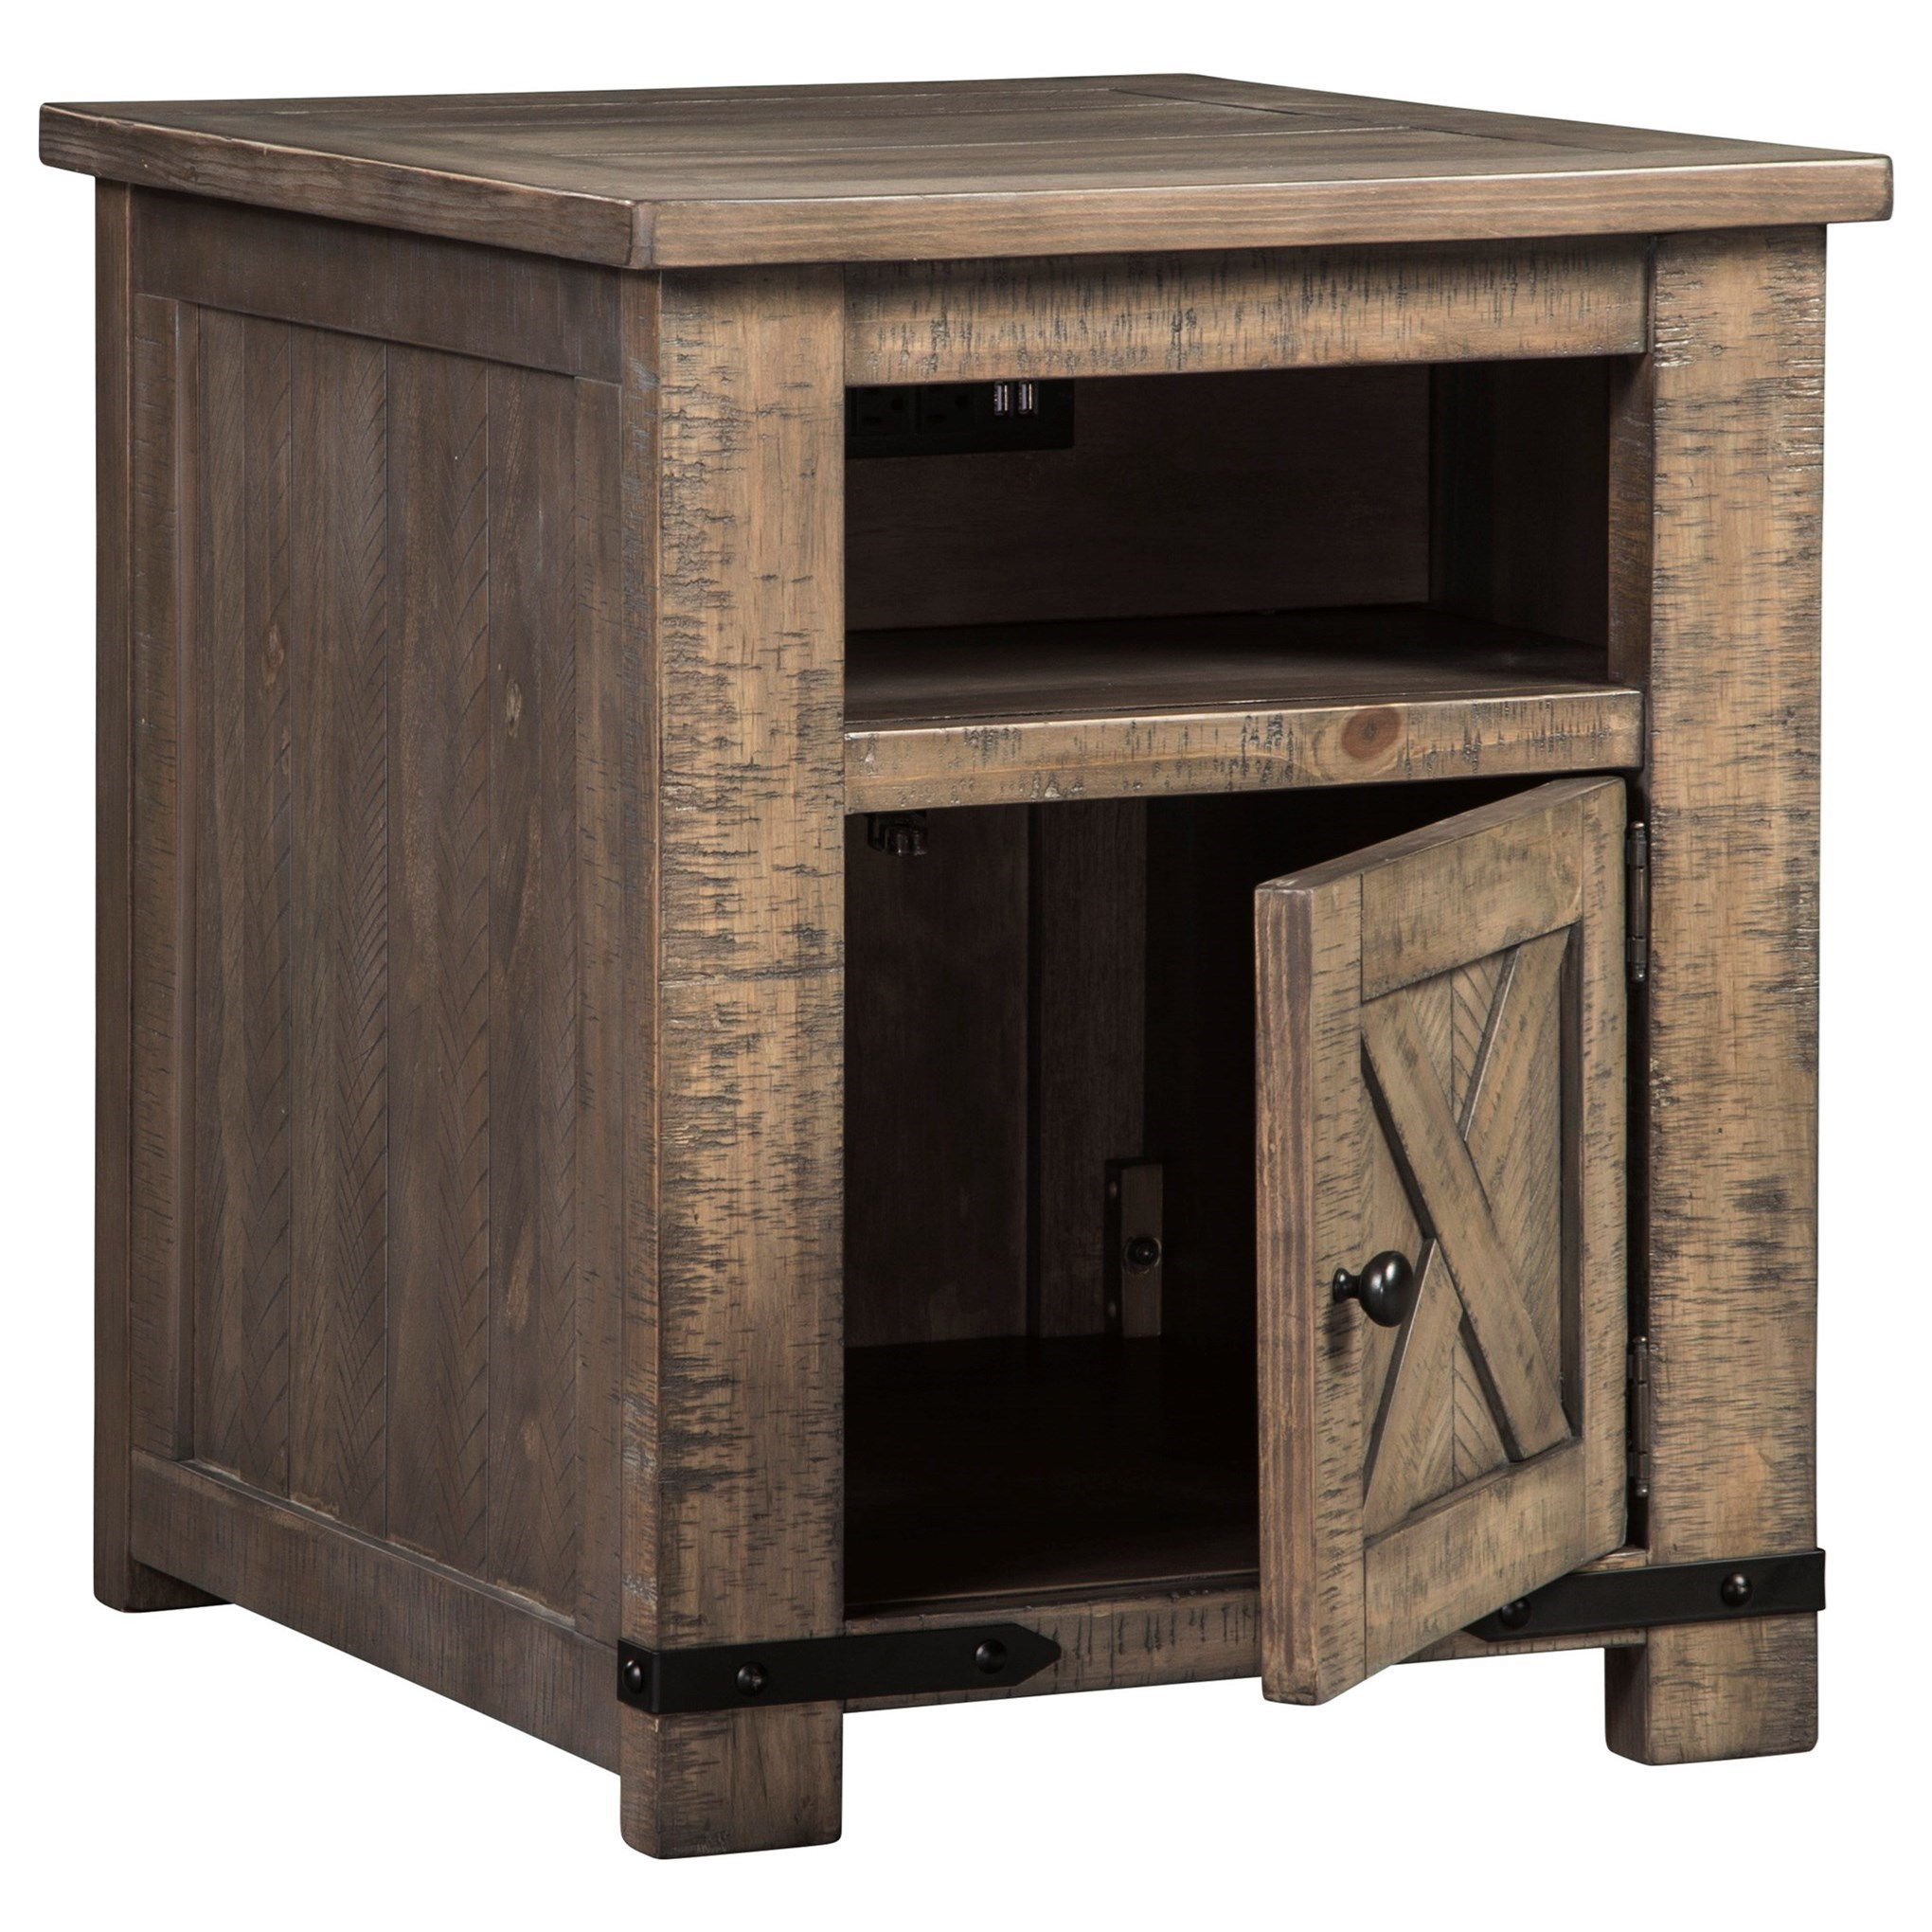 End Table For Living Room Aldwin Rustic End Table With Usb Charging By Signature Design By Ashley At Household Furniture